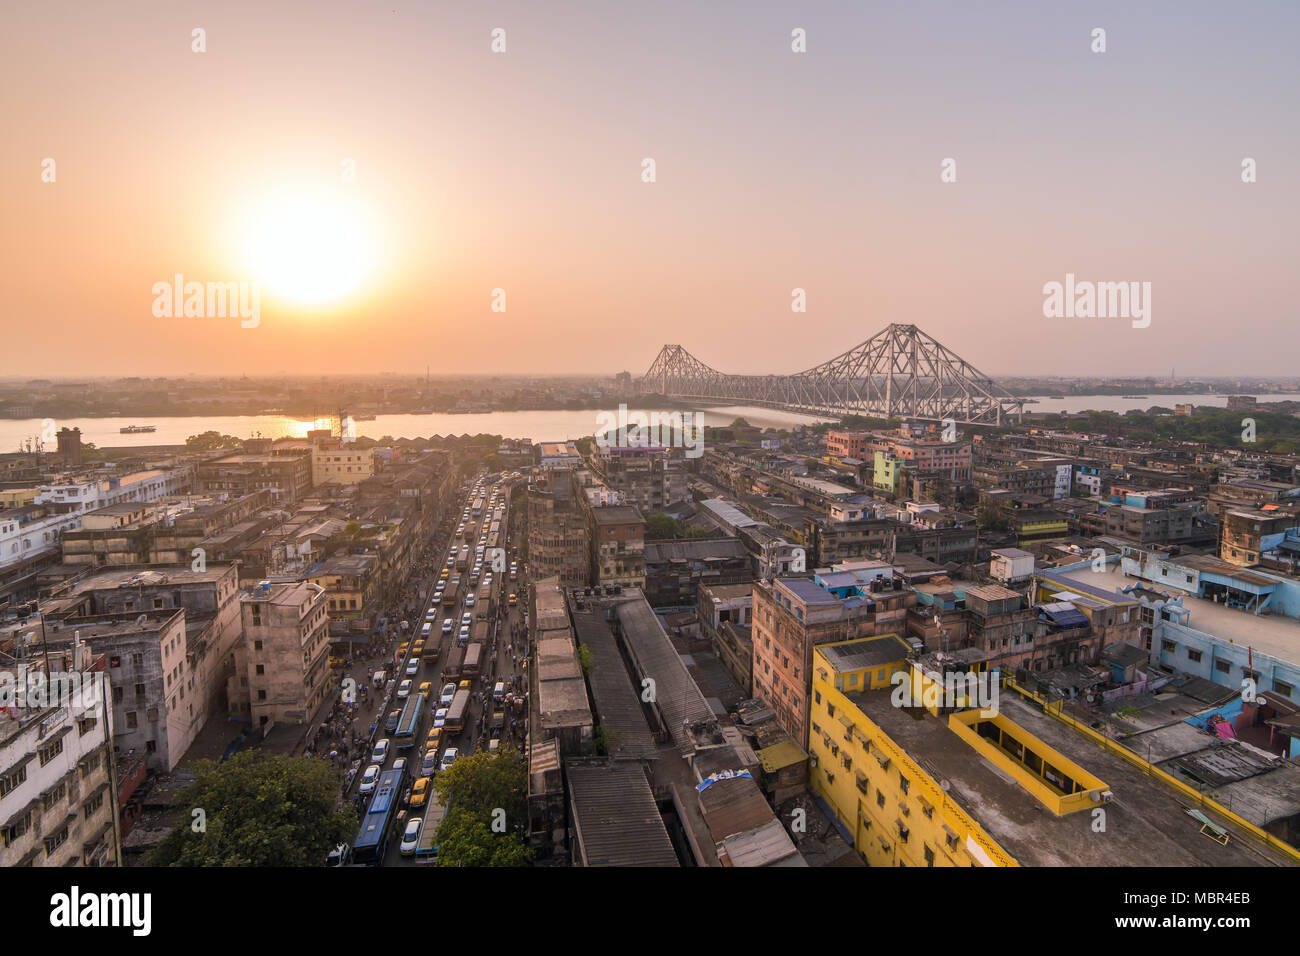 Aerial view of Kolkata city, India. Beautiful sunset over the famous Howrah bridge - The historic cantilever bridge on the river Hooghly, Calcutta, In - Stock Image